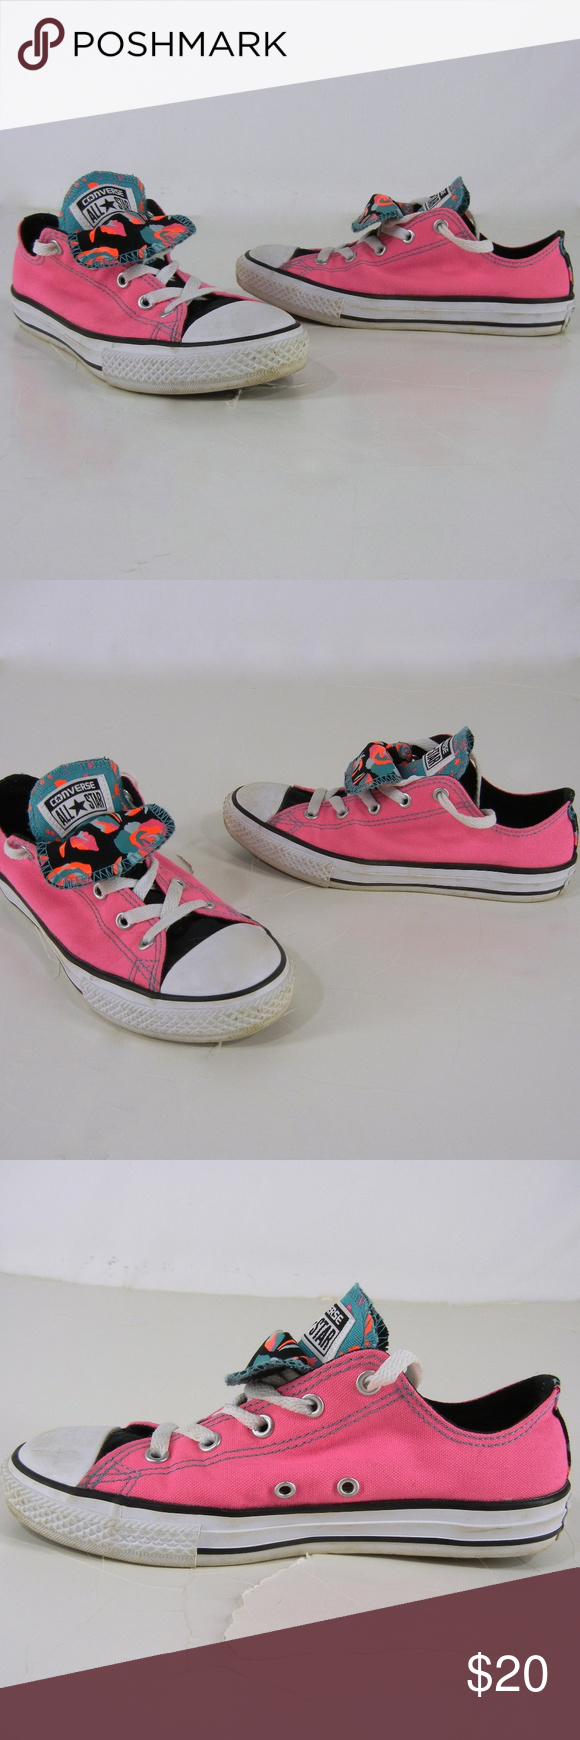 b9d23361aea4 CONVERSE All Star CTAS Double Tongue Shoes Youth 3 CONVERSE junior size low  top sneakers.